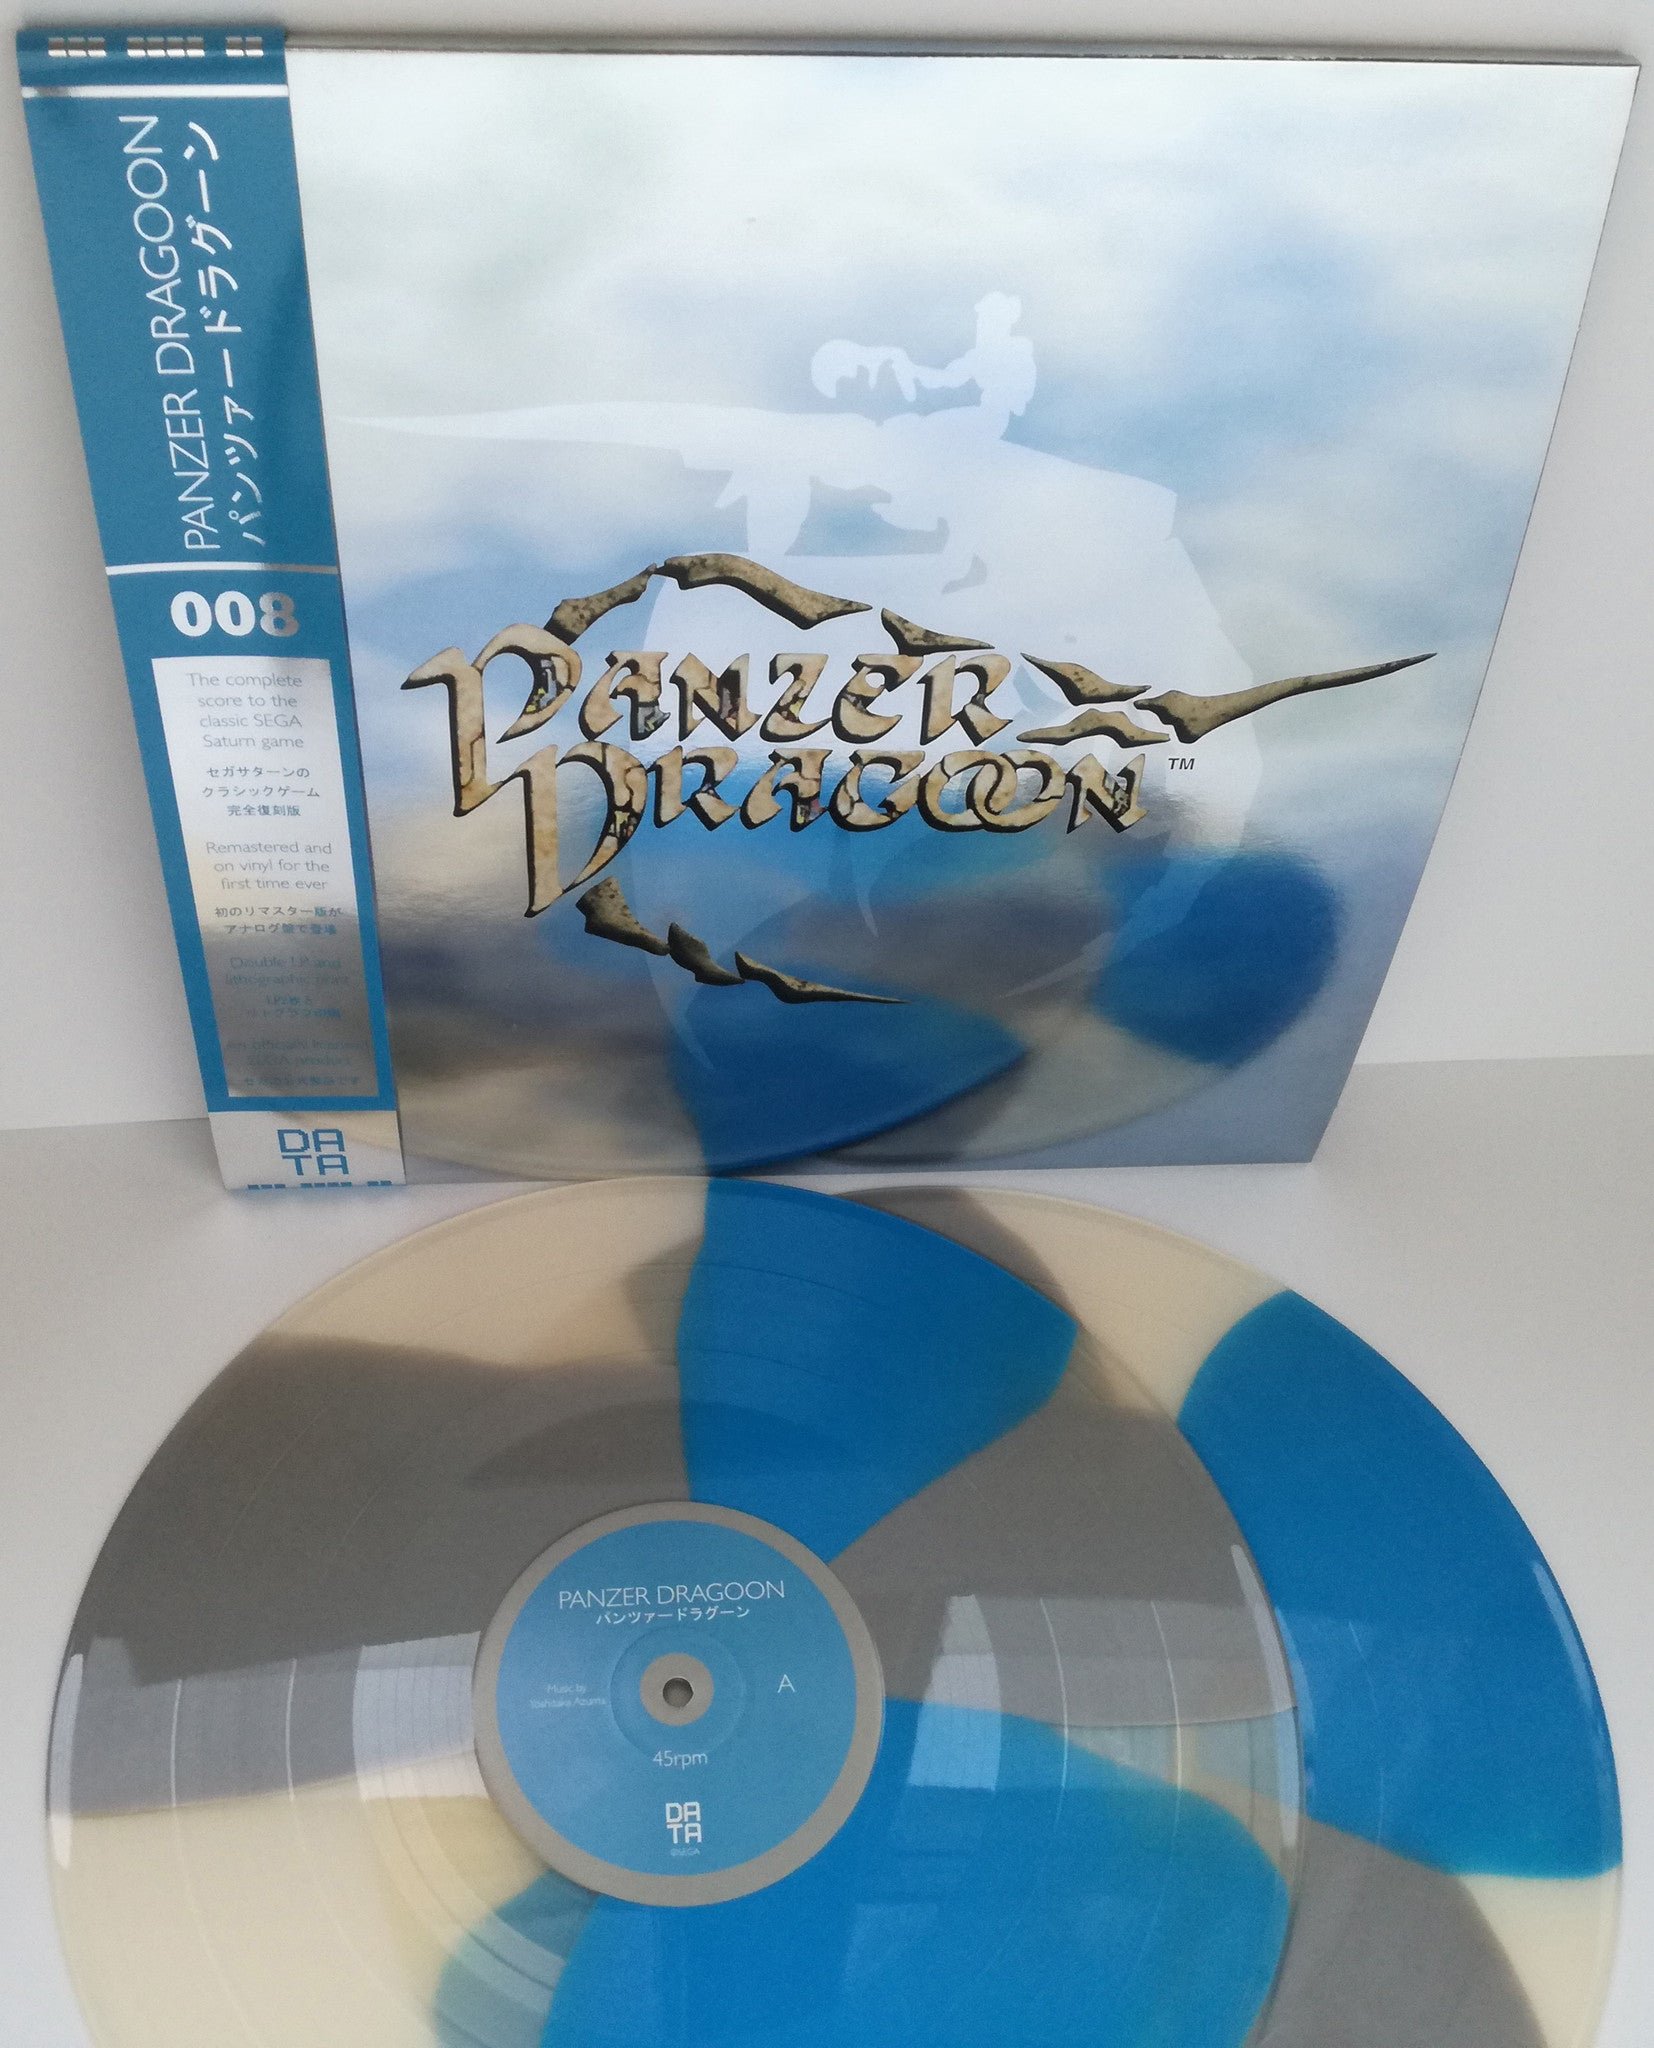 Vinyl Data discs 8 et 9 (Panzer dragoon et Revenge of Shinobi) Full_Offer_2_Cropped